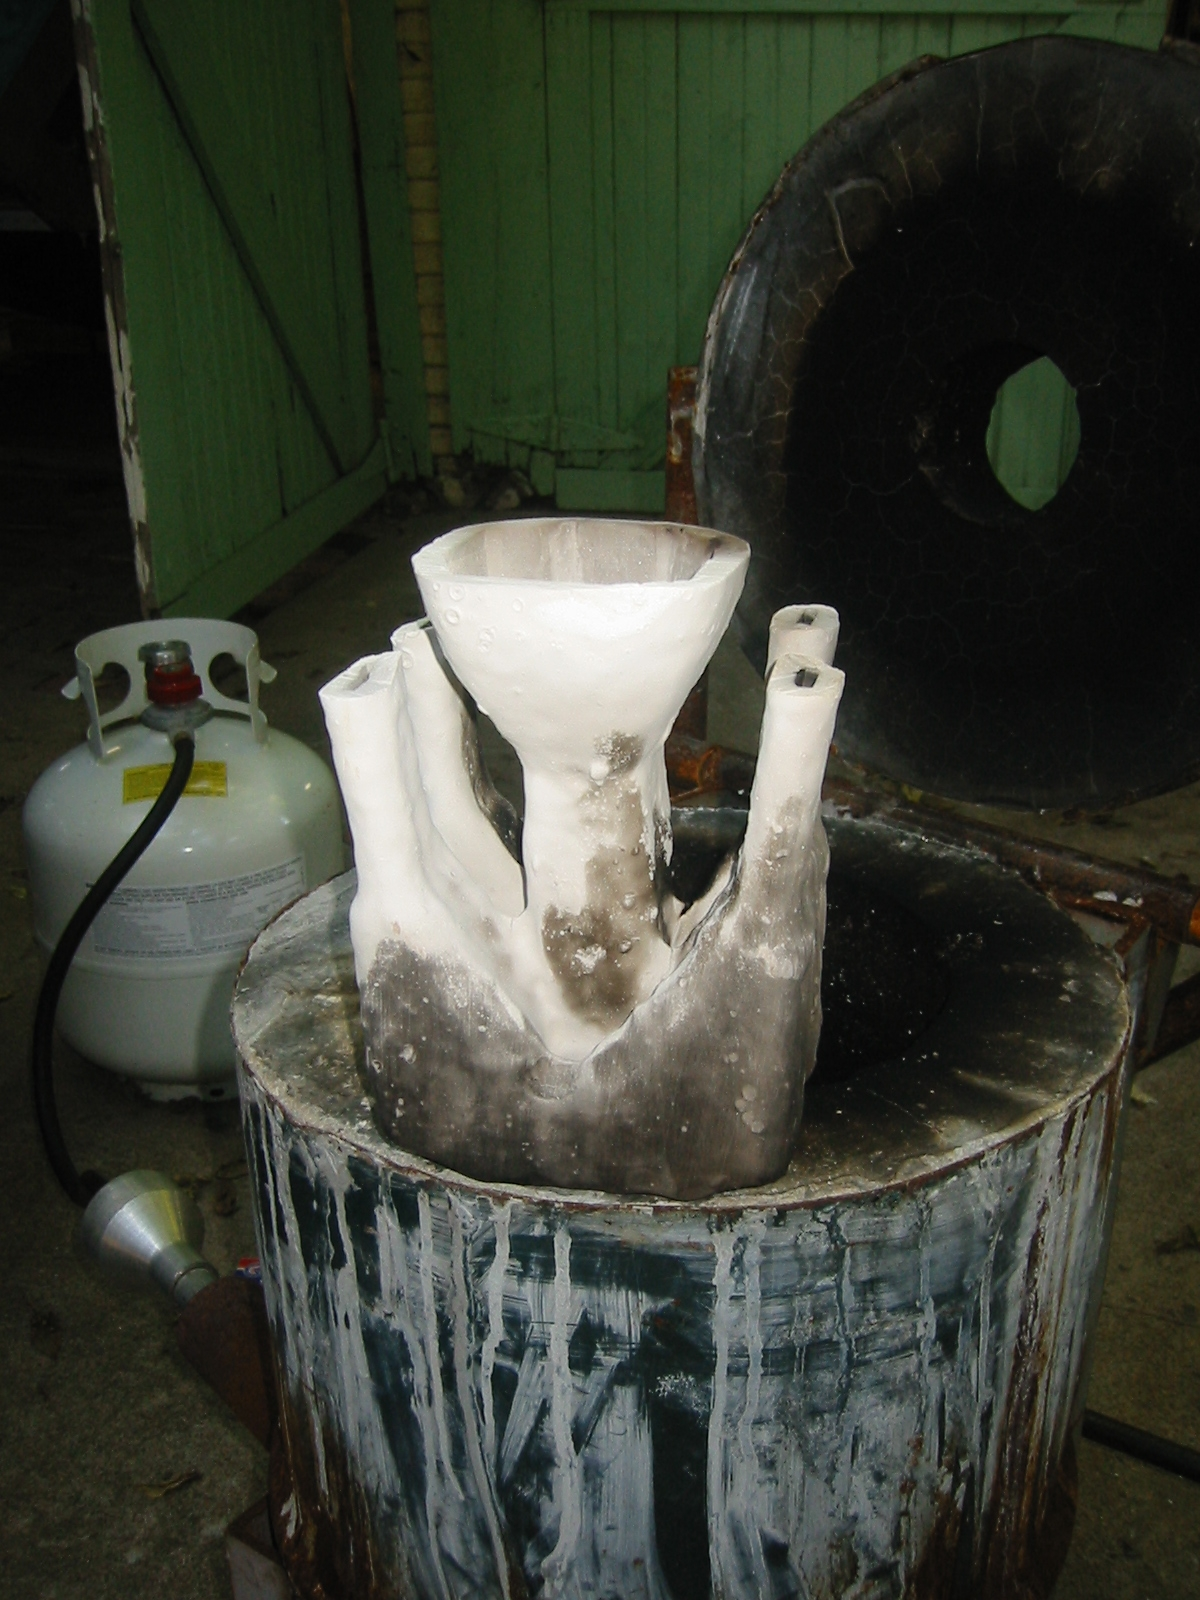 (3) The mold has be fired in the foundry after the foam was dissolved with acetone.